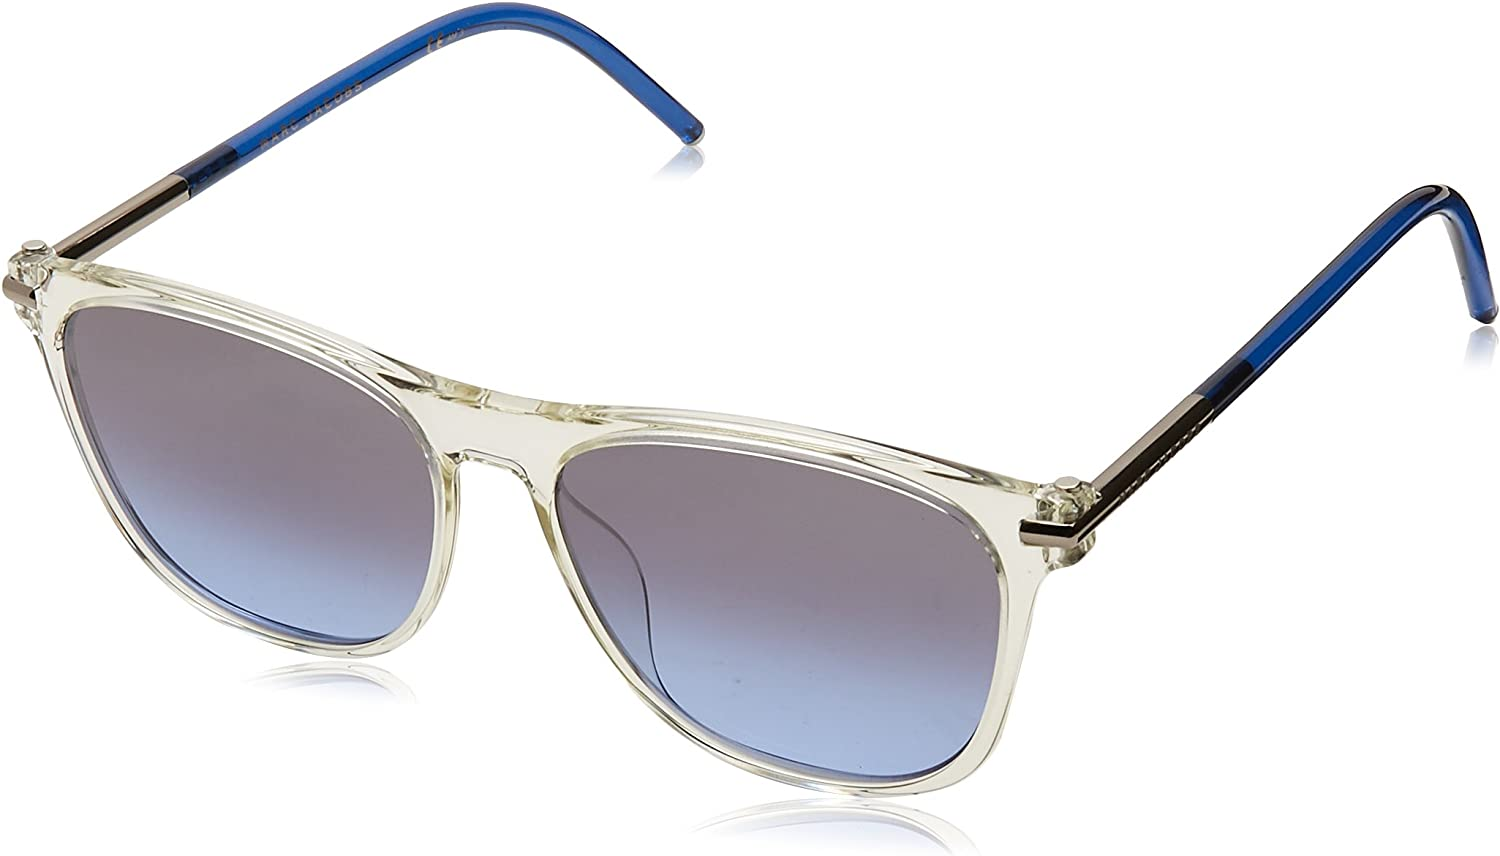 Marc Jacobs Women's Translucent Mirrored Sunglasses